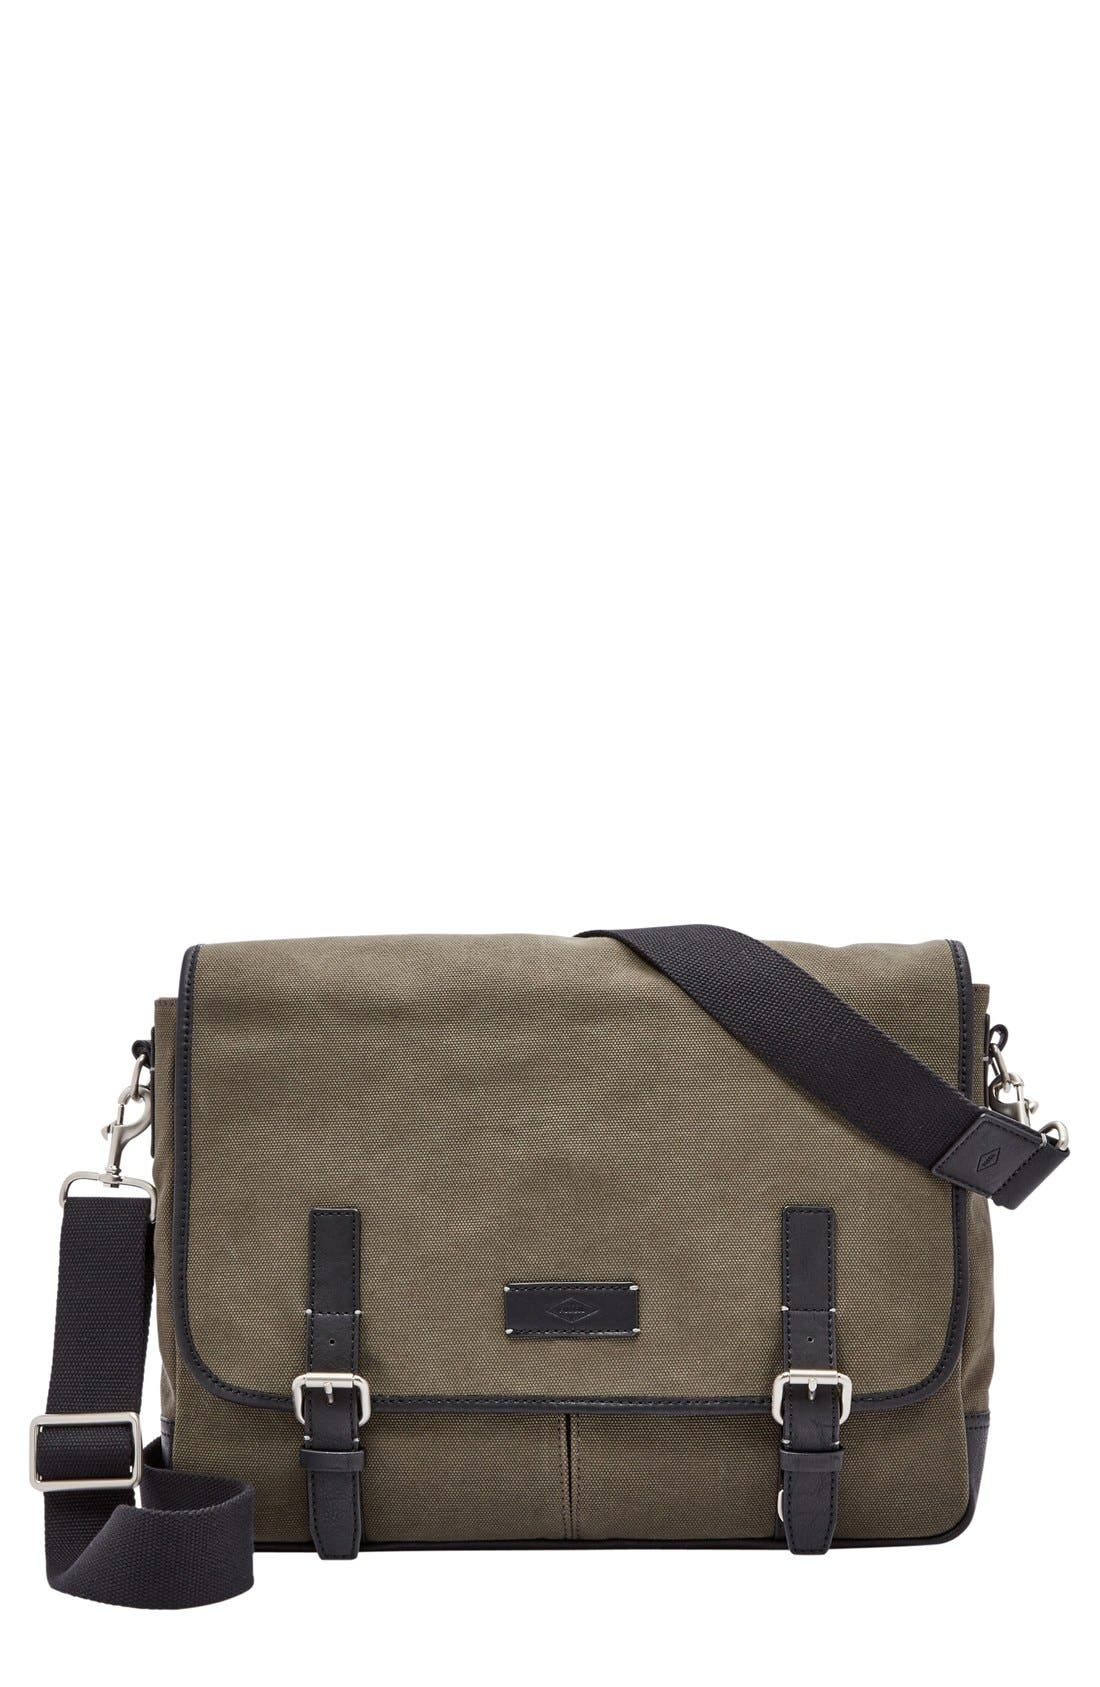 'Graham' Canvas Messenger Bag,                             Main thumbnail 1, color,                             345